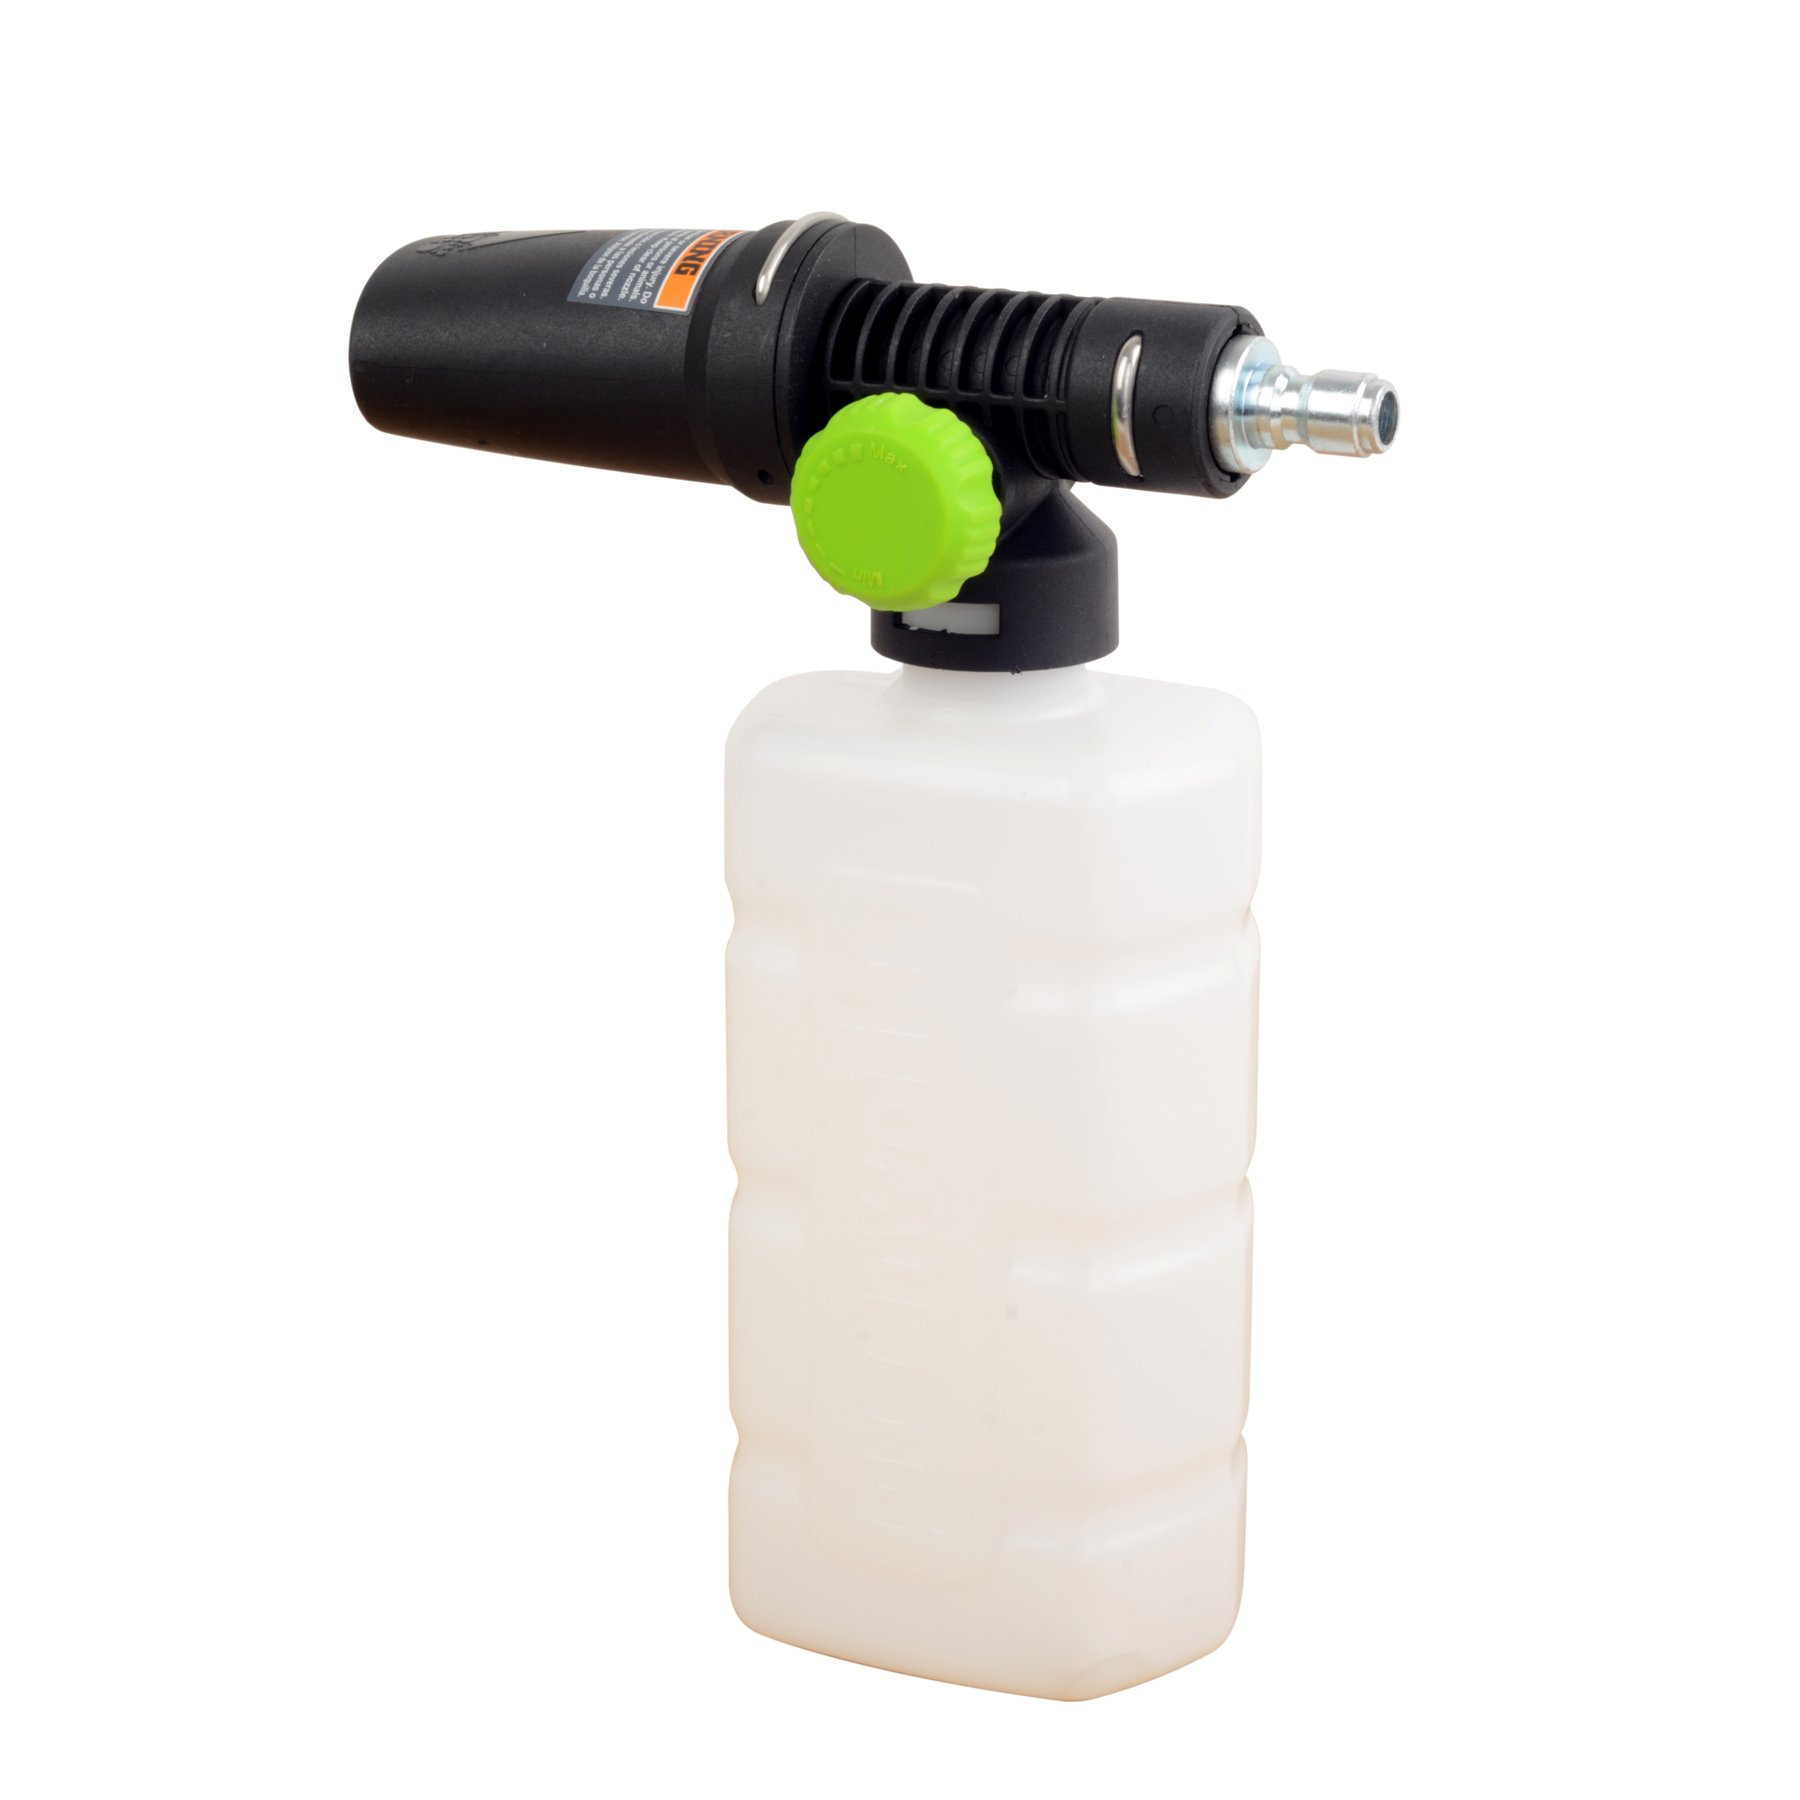 Greenworks High Pressure Soap Applicator Universal Pressure Washer Attachment 51362